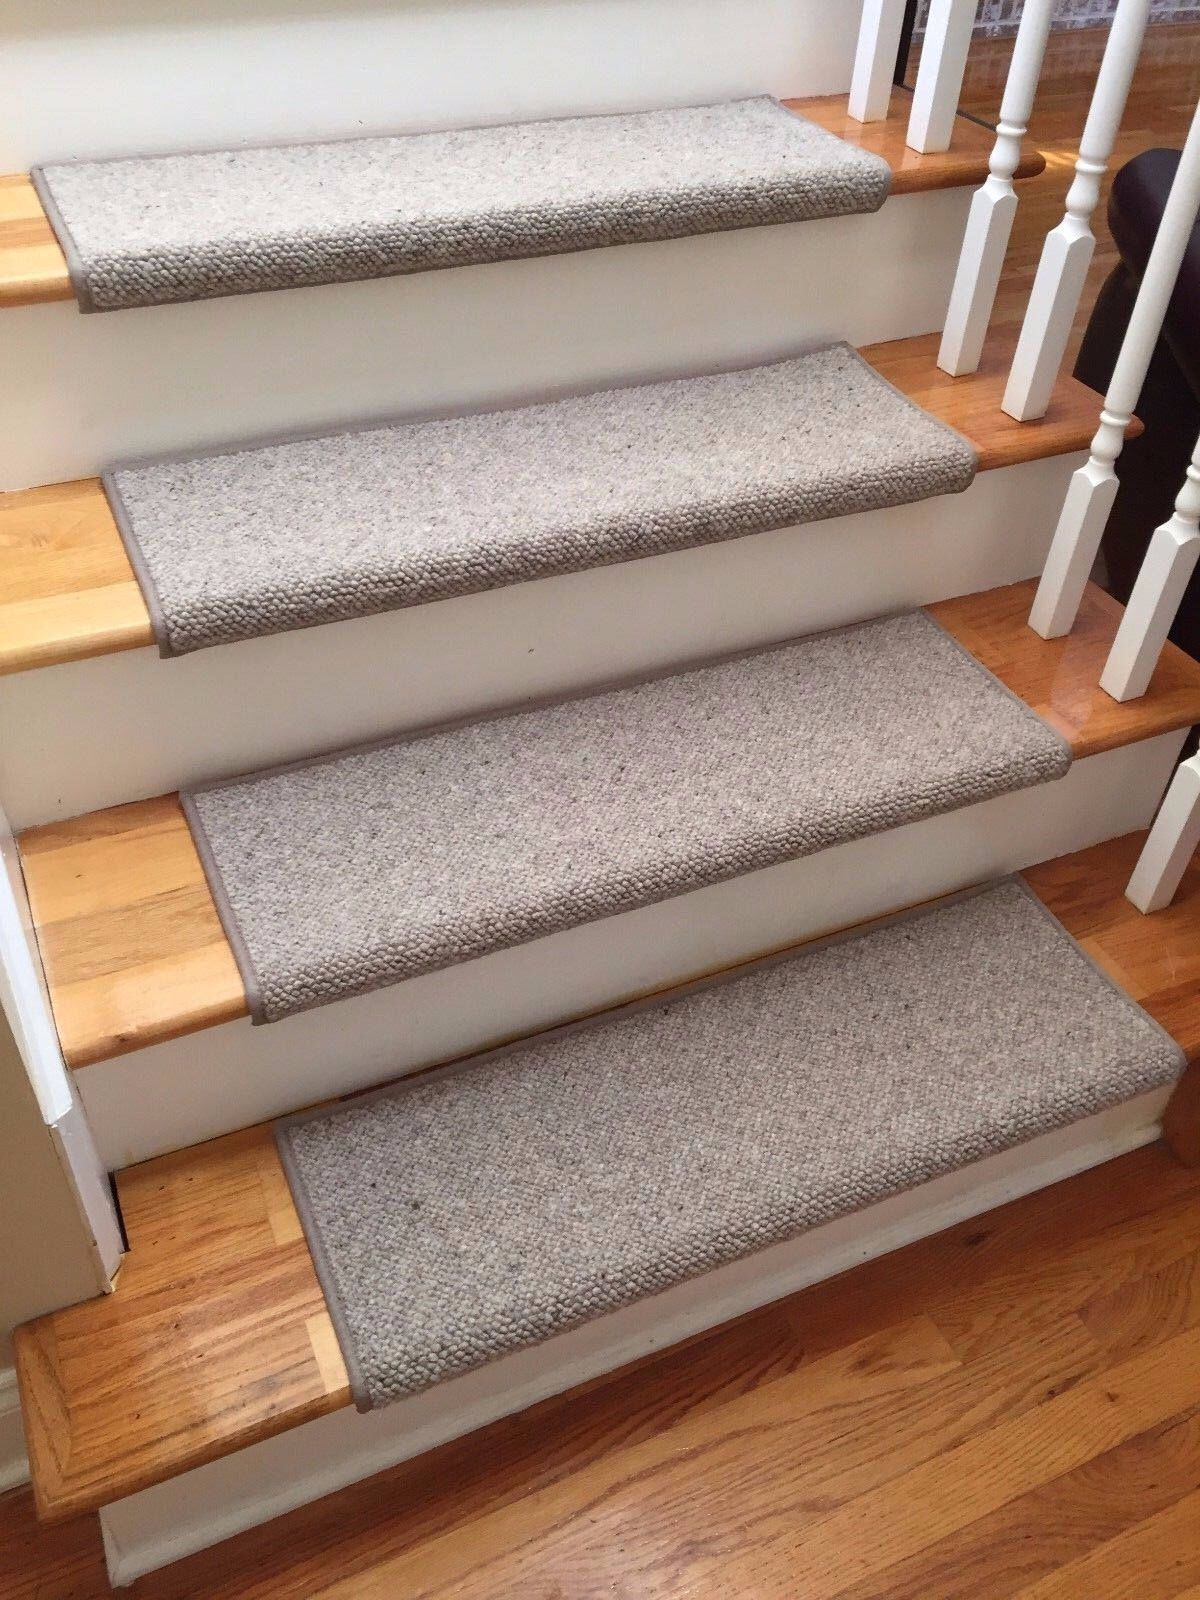 Alfa Stone 100 Wool True Bullnose Padded Carpet Stair Tread Handmade Step Cover Comfort Safety Dog Cat Pet Runner Sold Individually Carpet Stair Treads Carpet Stairs Handmade Step